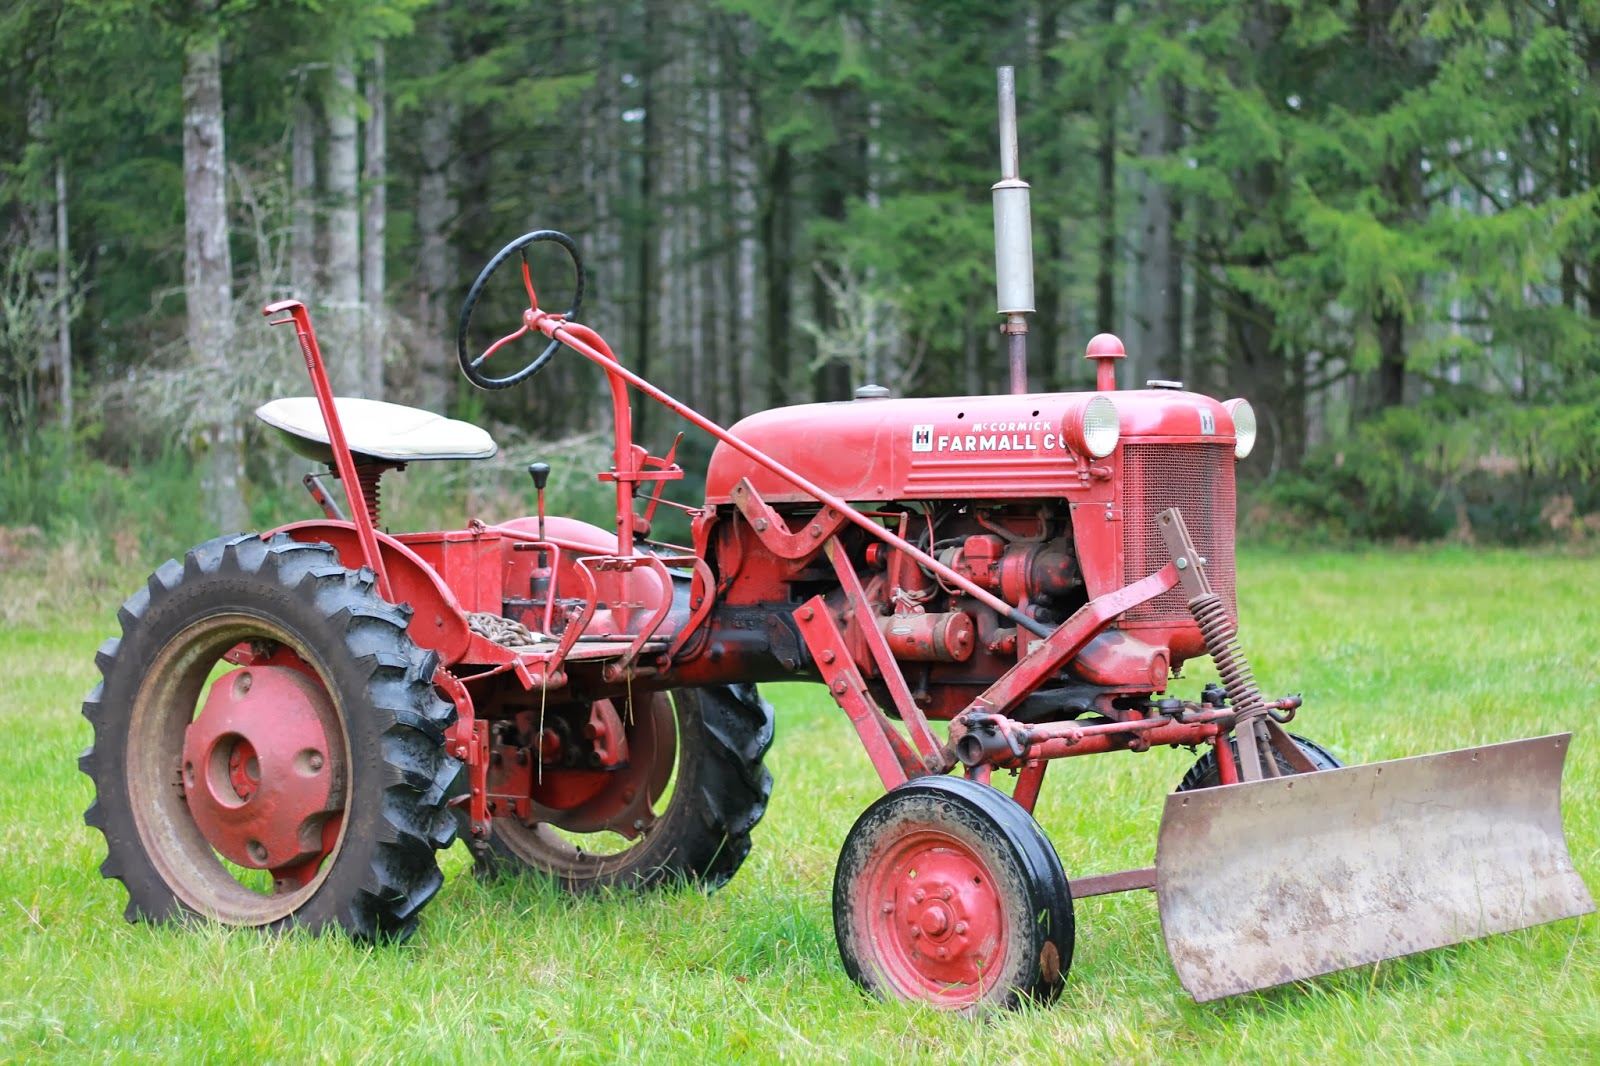 Ih Cultivator Parts : Oracle farms at delphi cultivator for the farmall cub